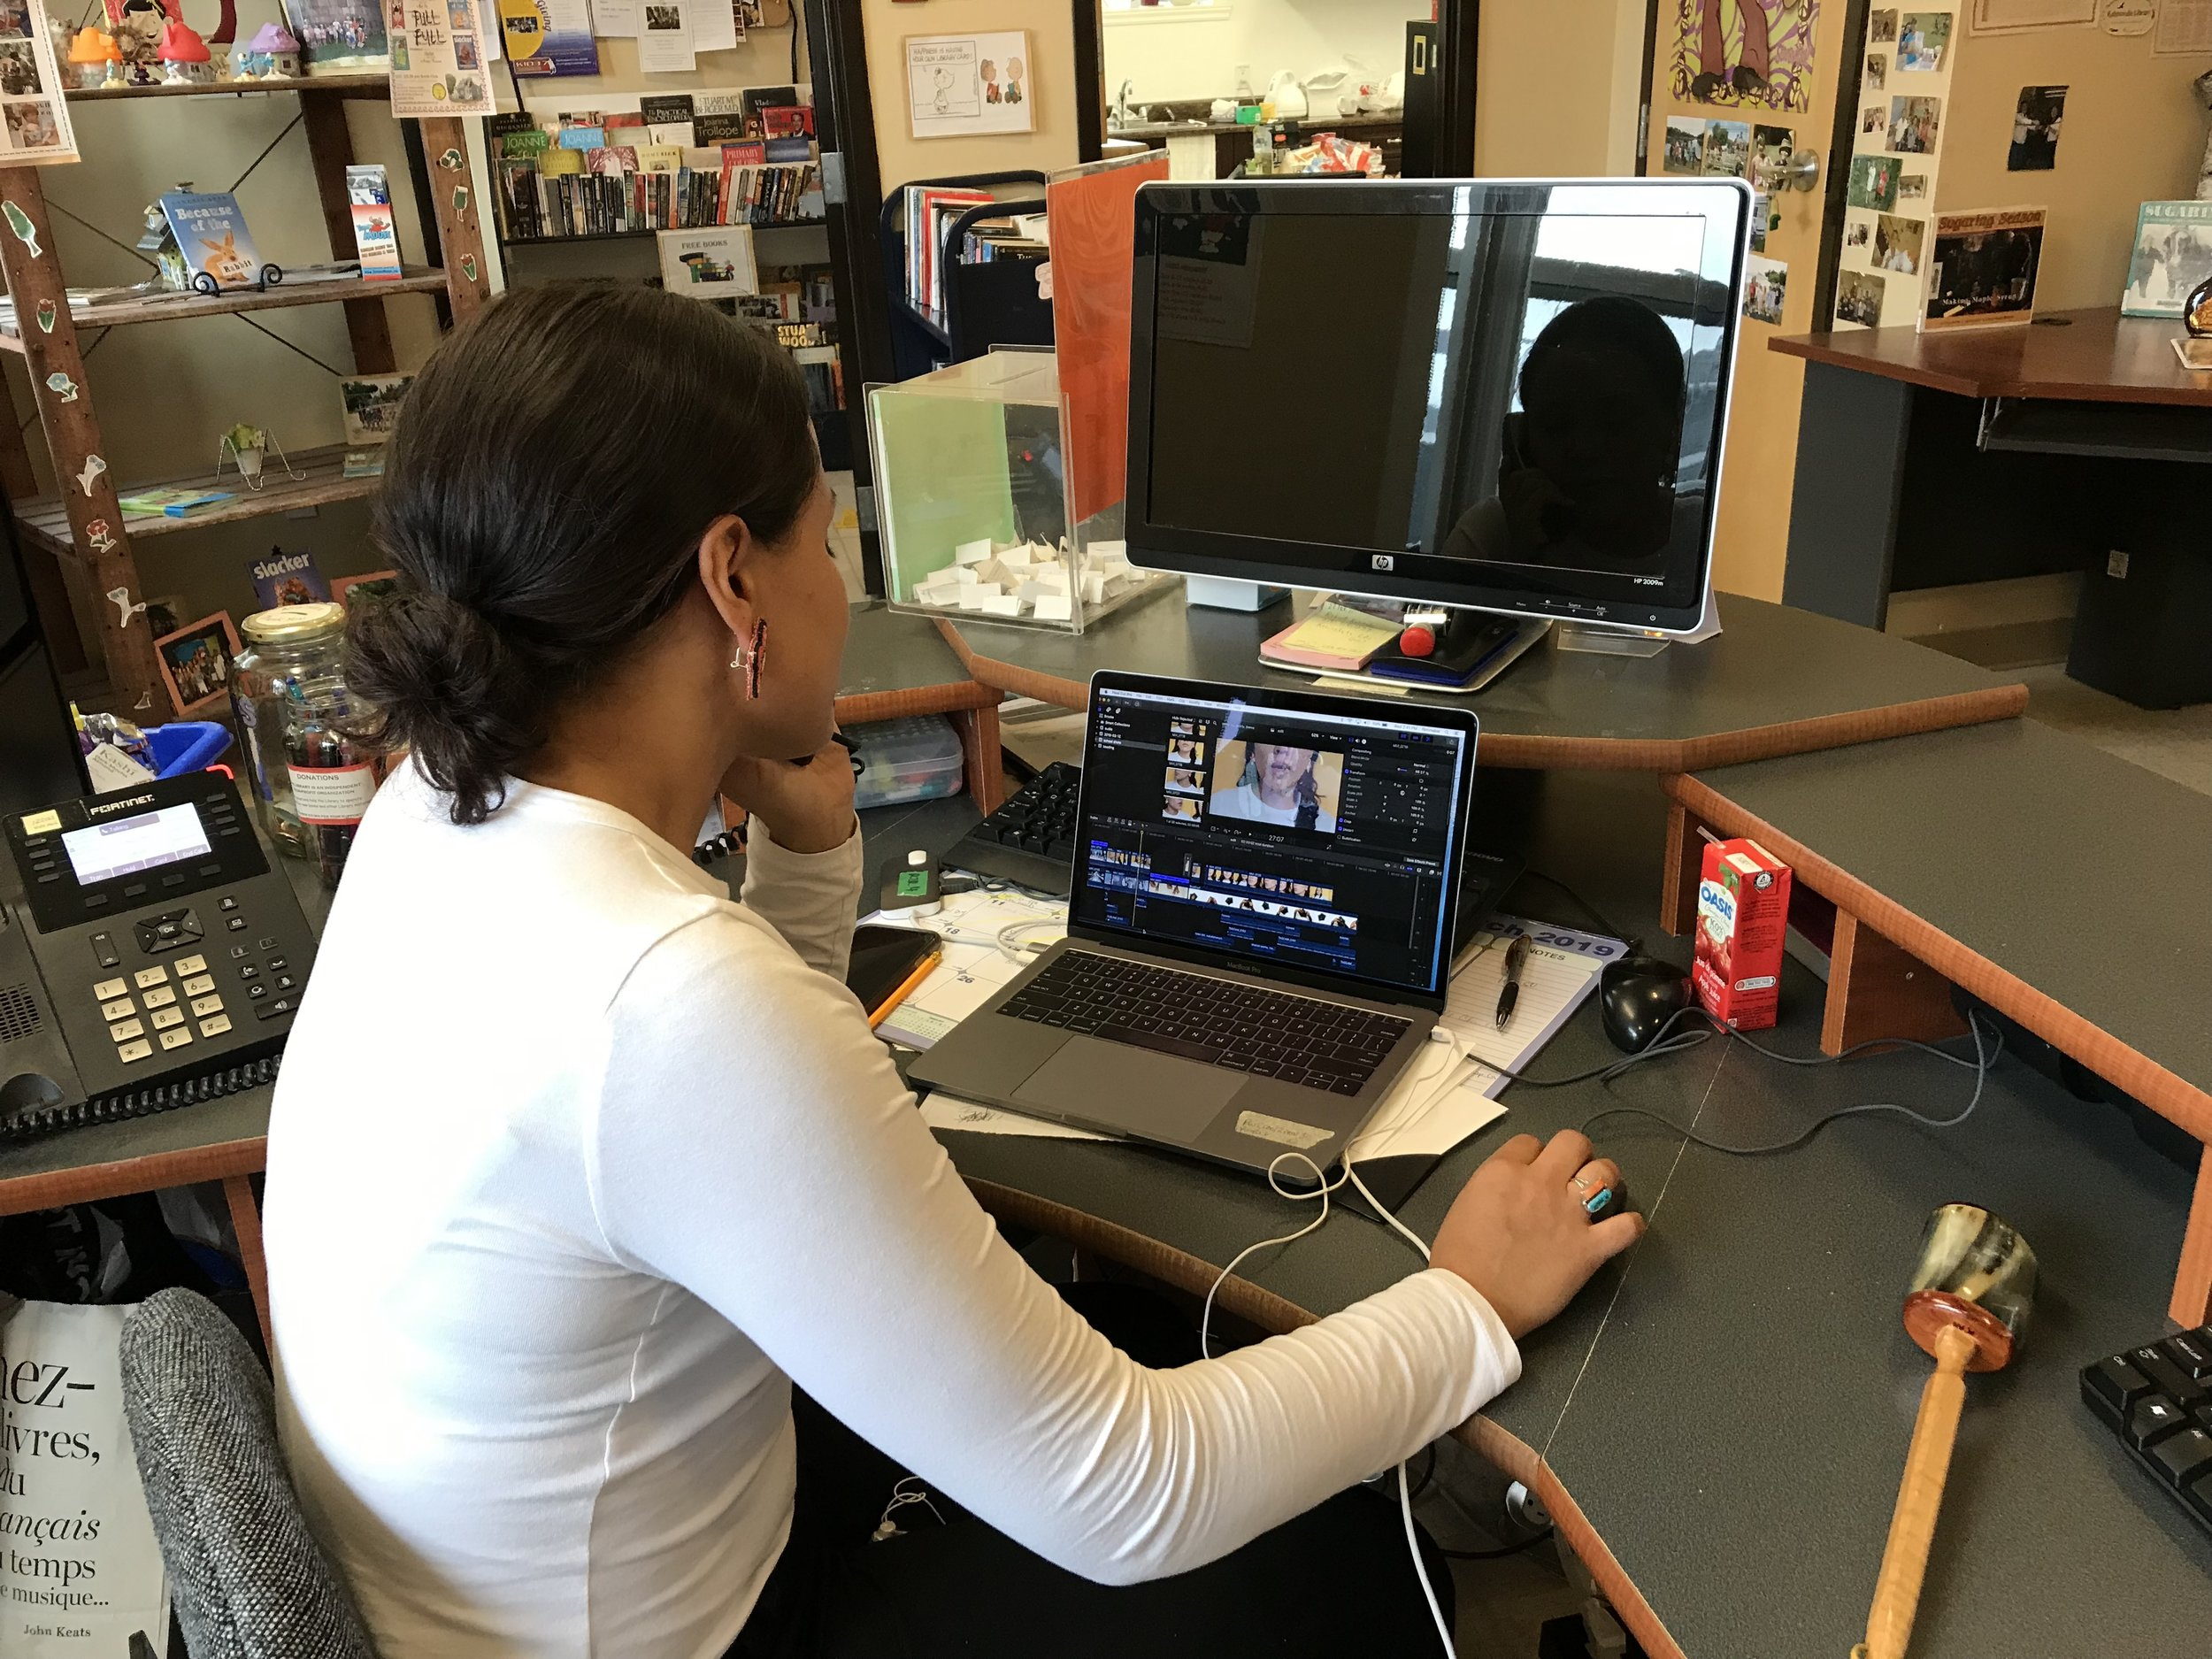 Answering phones and editing films, just a normal day at the Kahnawake Library!